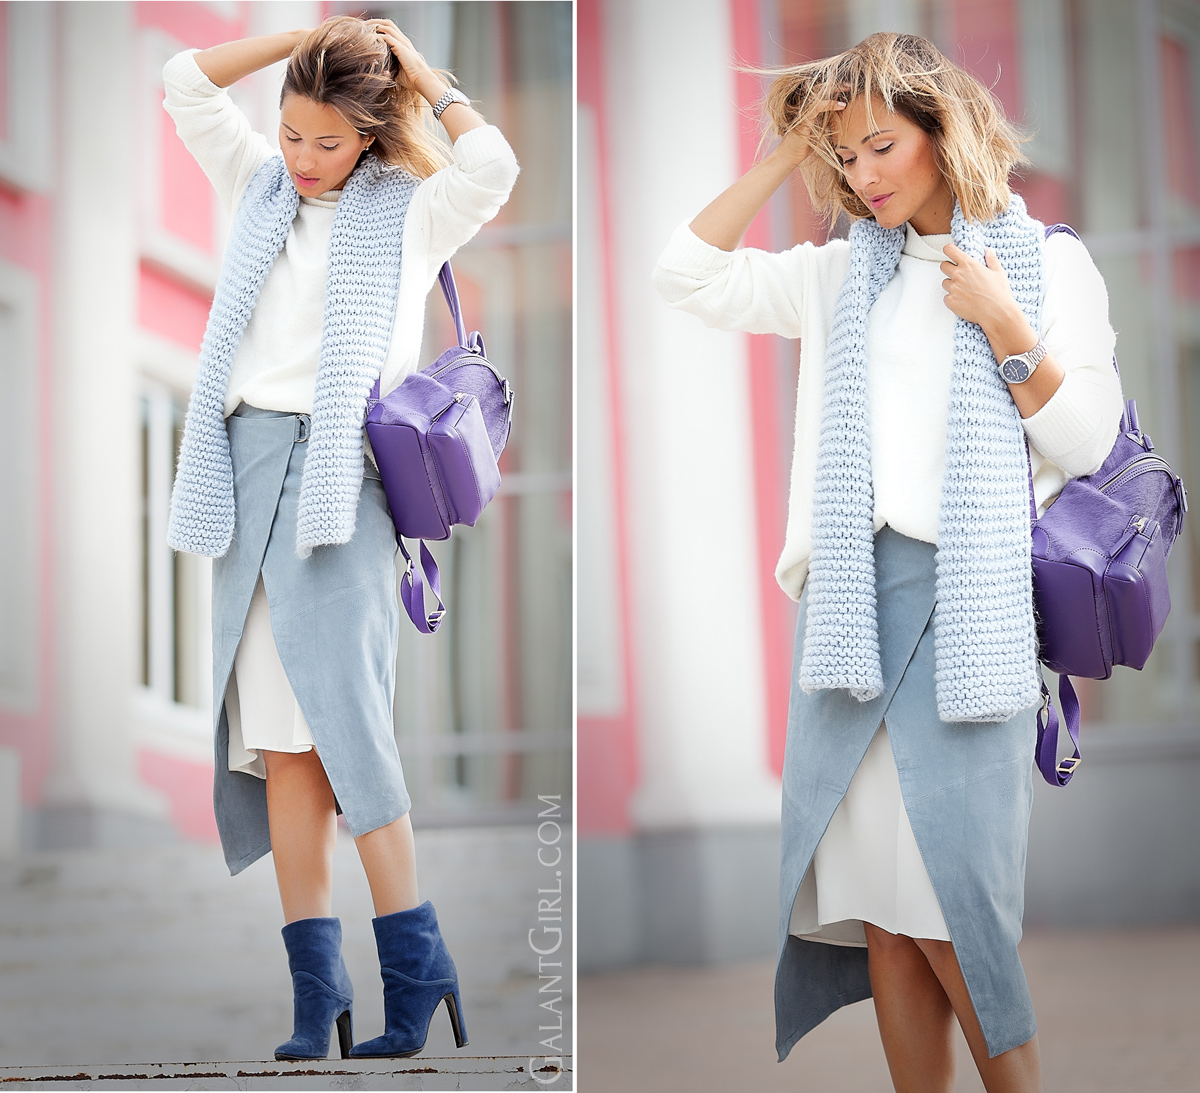 asos+suede+wrap+skirt-pernelle+bagpack-fashion+blogger+galant+girl